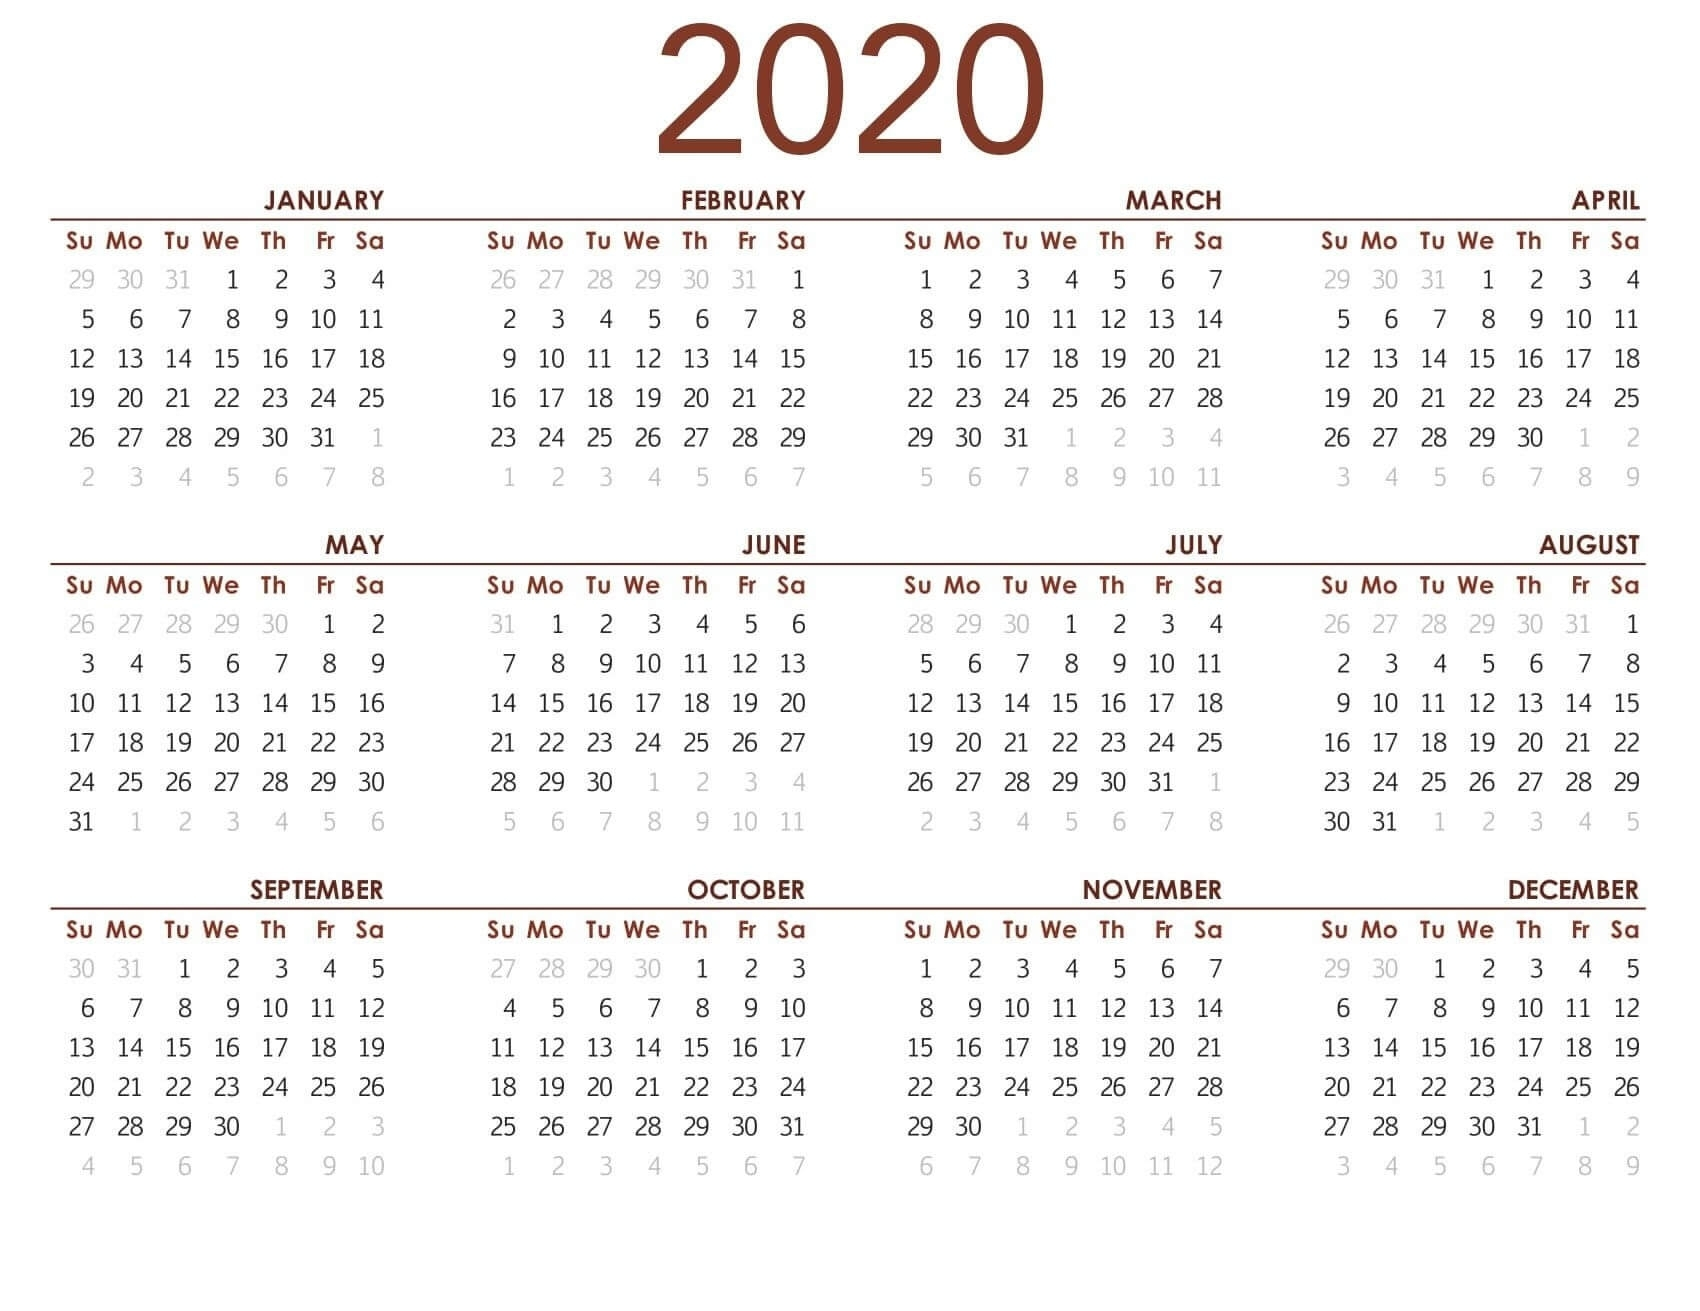 Printable Calendar 2020 With Notes - 2019 Calendars For with Year At A Glance Calendar 2020 With Holiday Free Printable